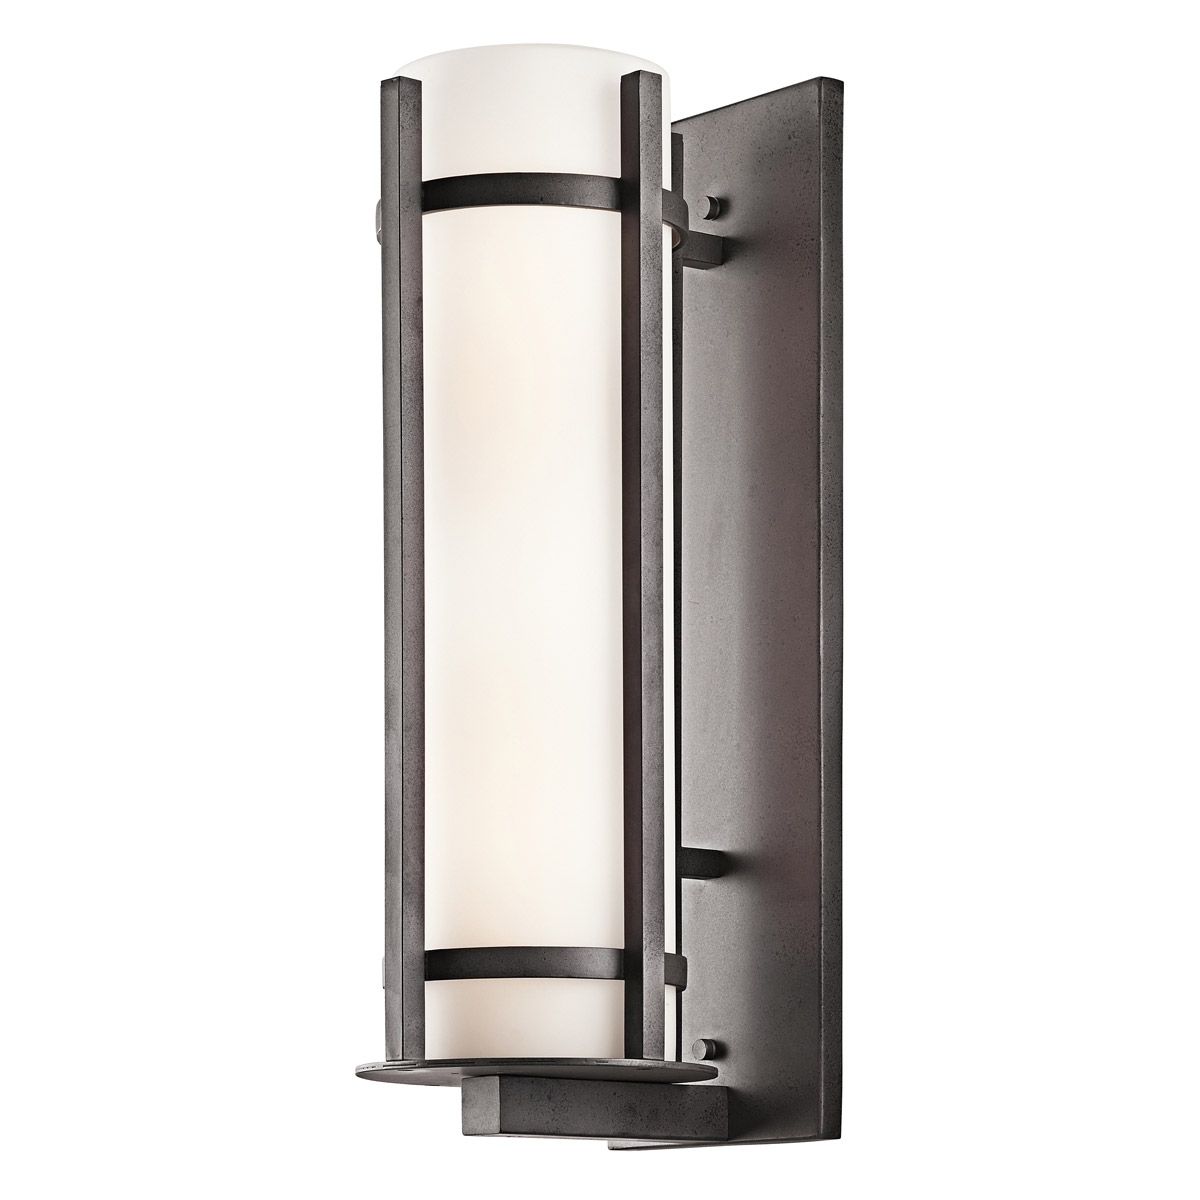 Kichler Outdoor Lighting Wall Sconces Inside Most Popular 49121Avi Camden Outdoor Wall Sconce (View 7 of 20)